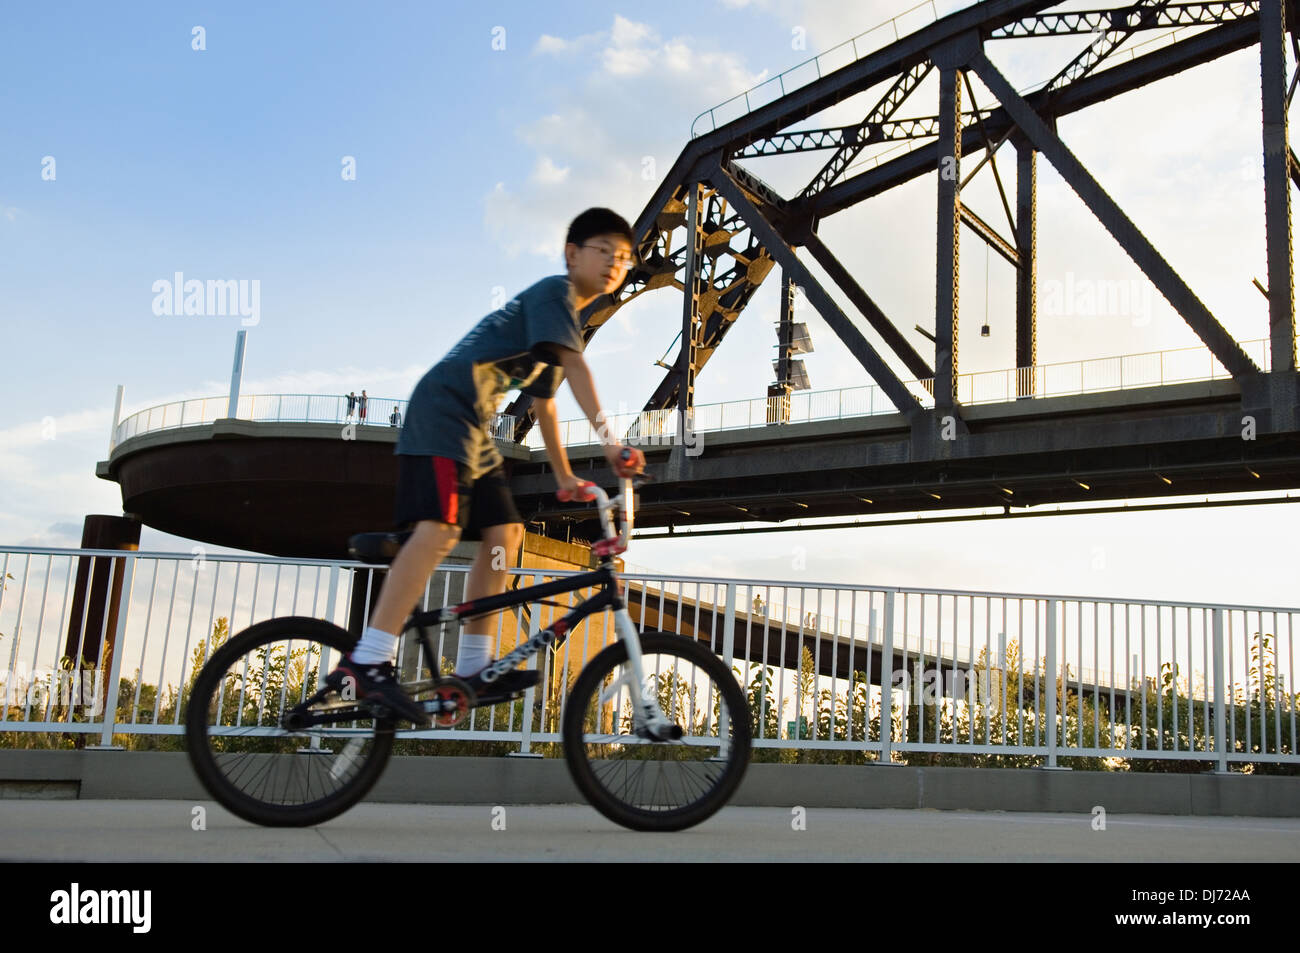 Boy Riding Bicycle up to the Big Four Pedestrian Bridge in Louisville - Stock Image